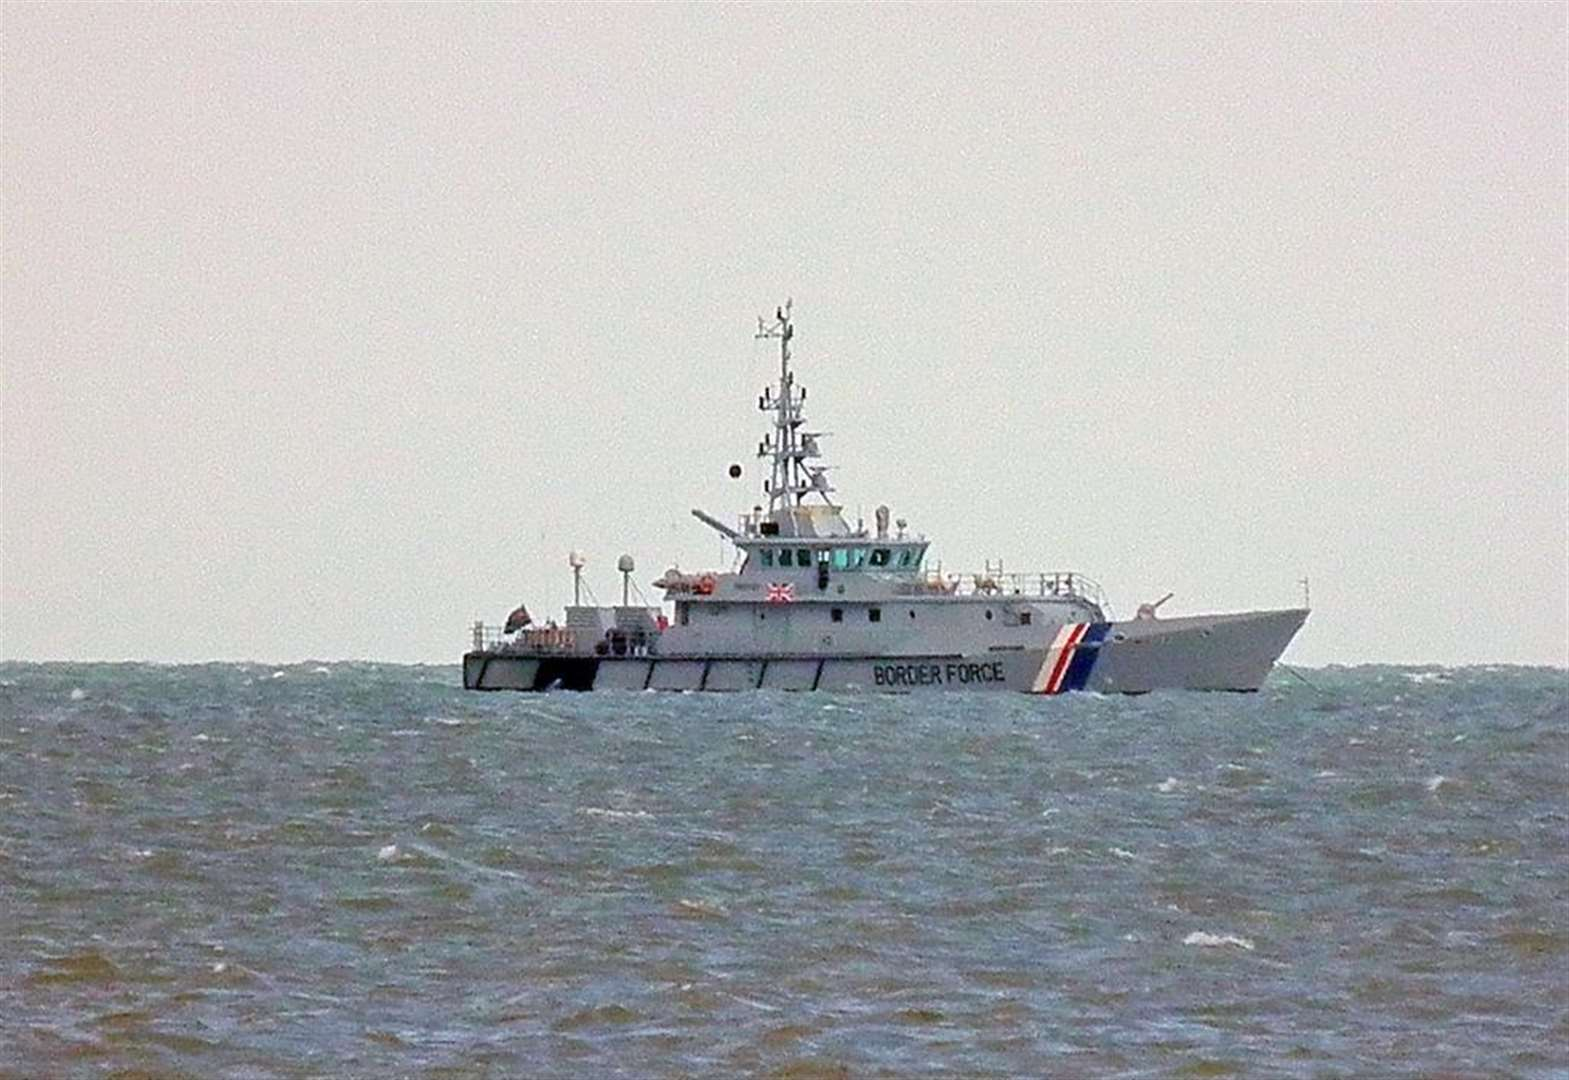 Border forces called out to 'boat incident'